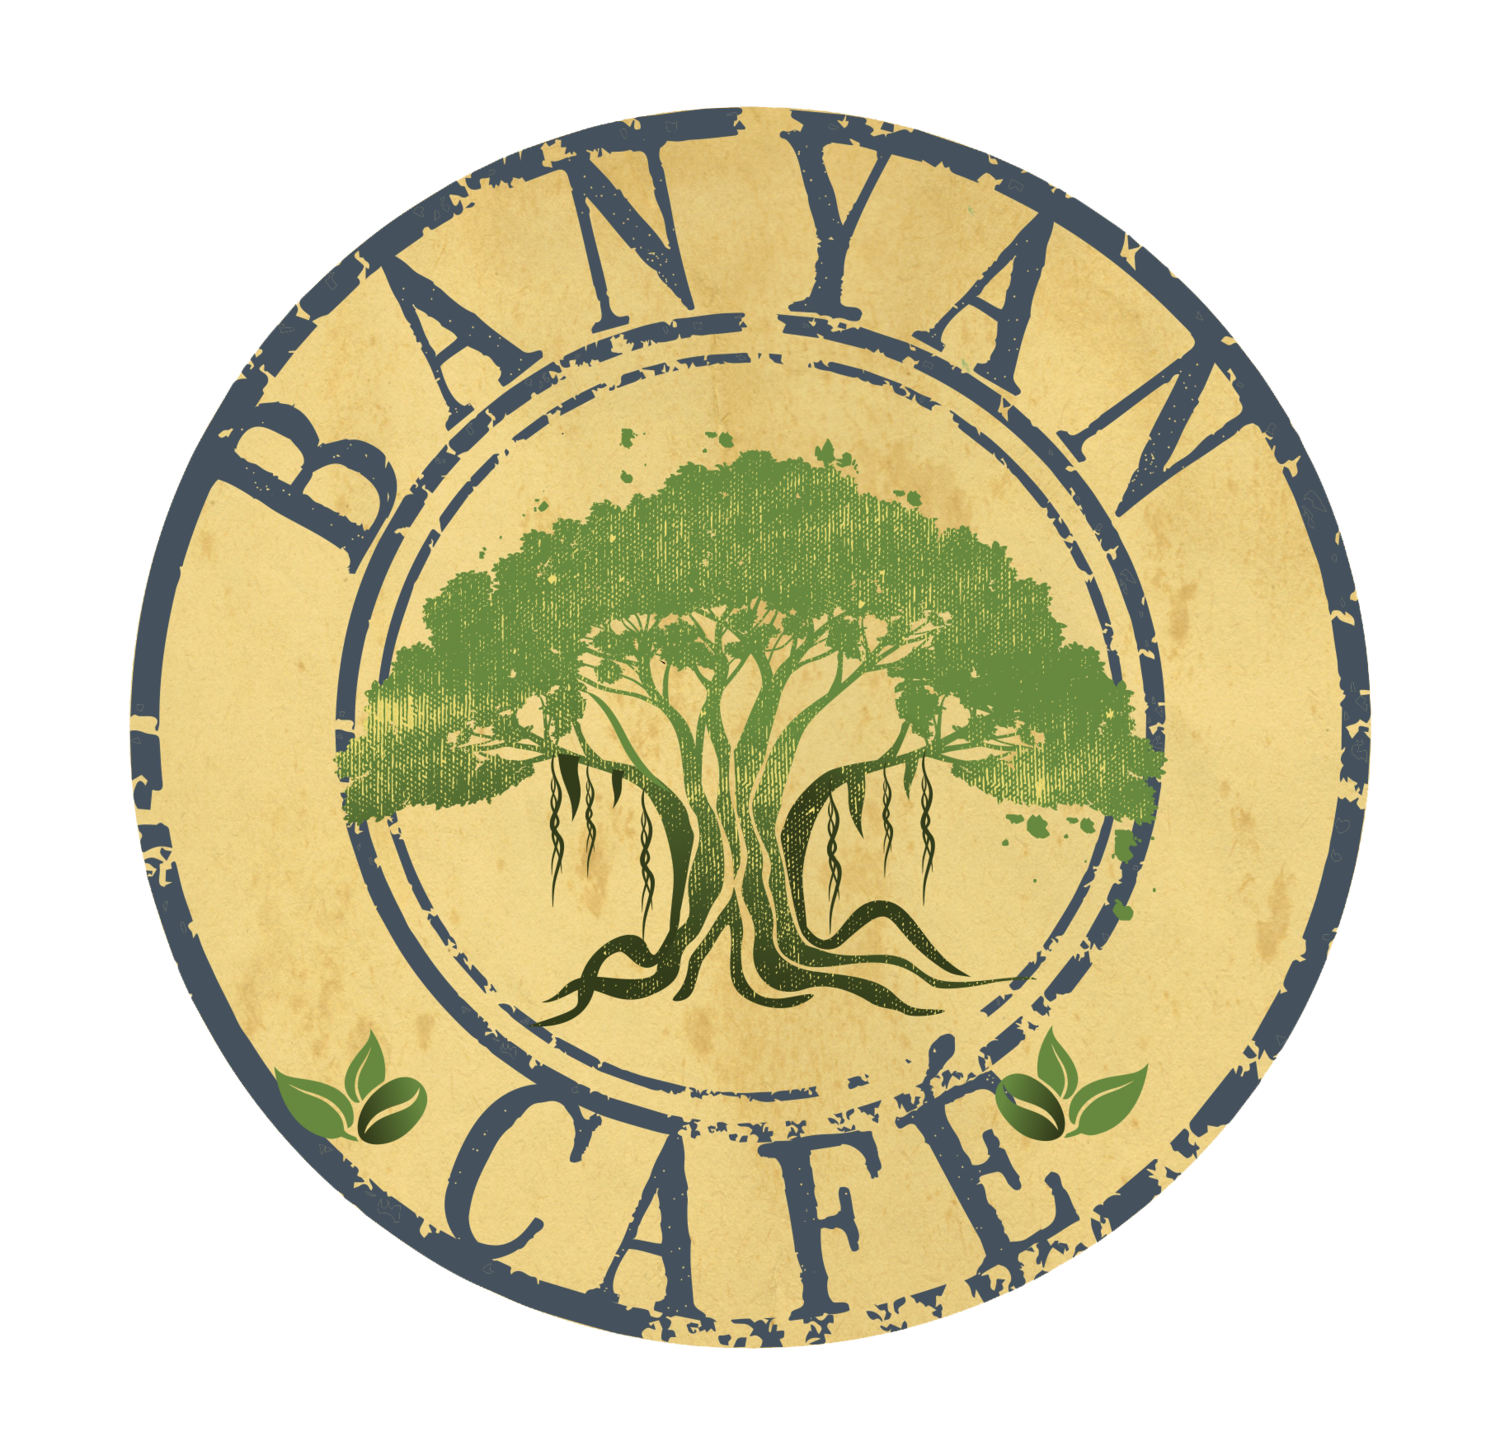 Banyan Cafe + Catering